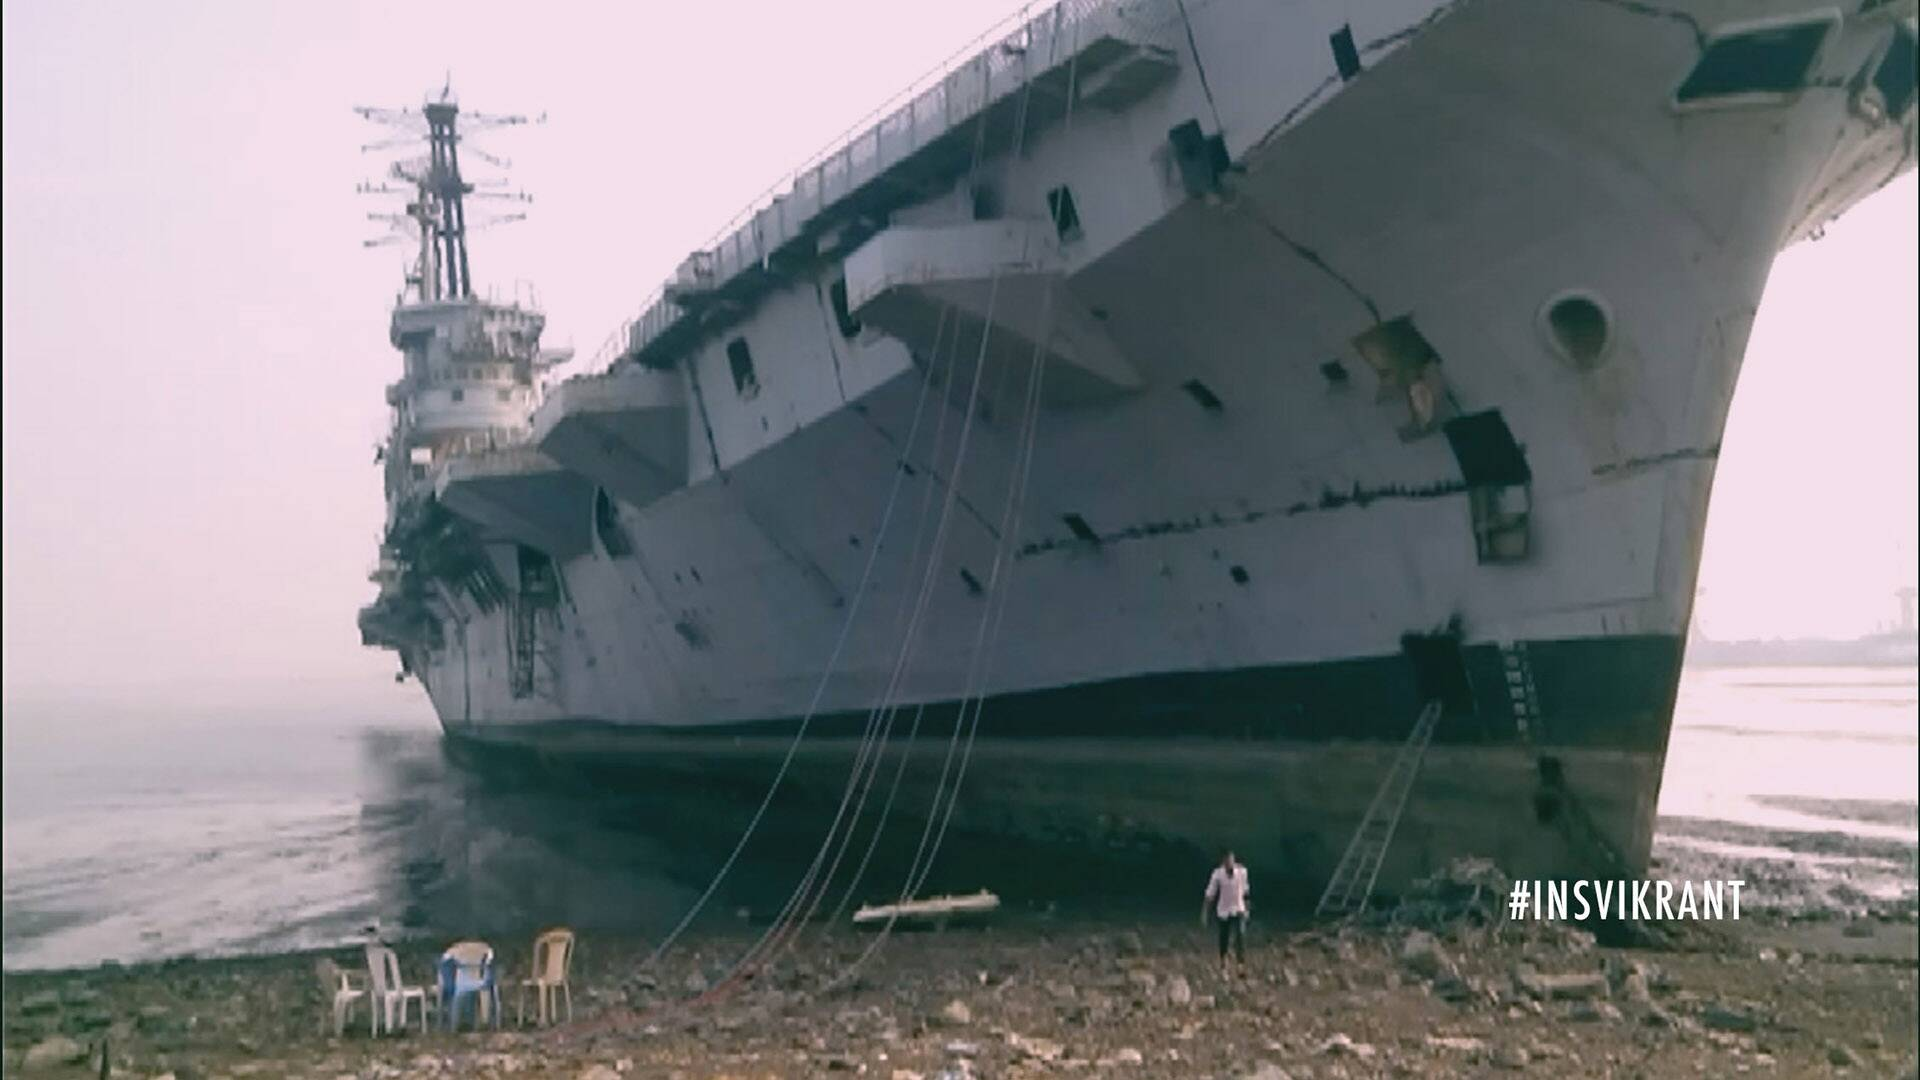 India's first aircraft carrier INS Vikrant being broken up